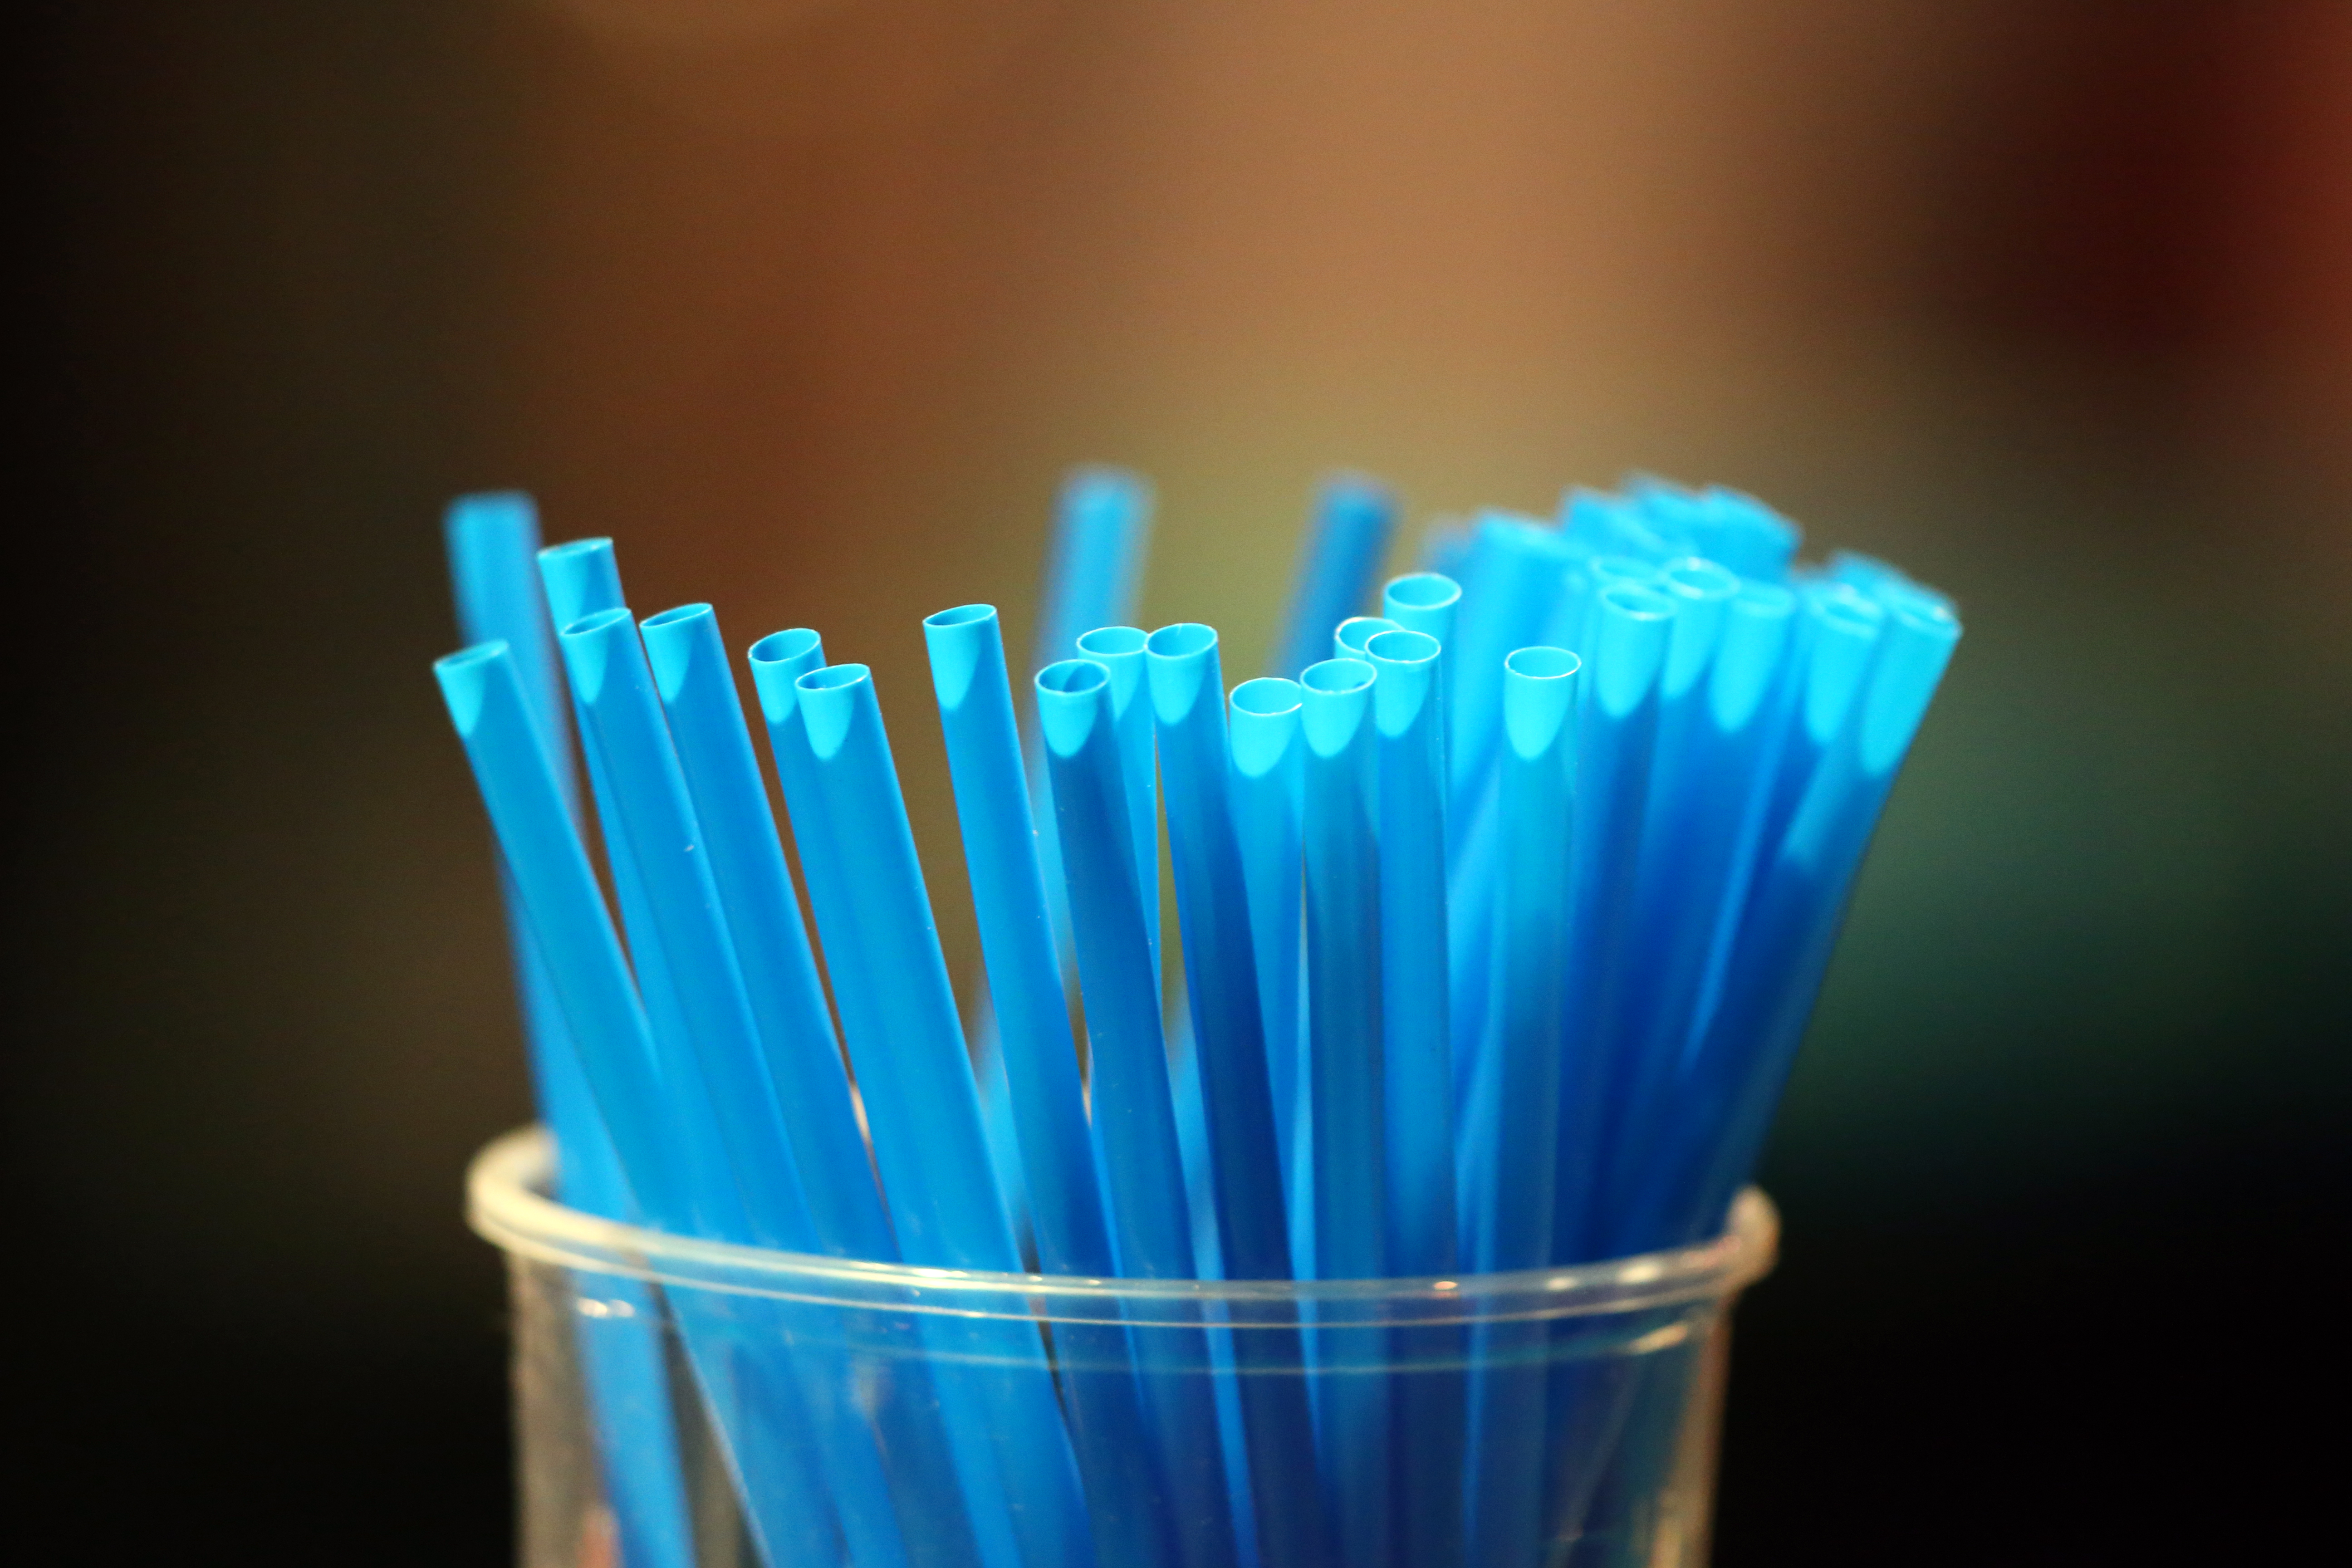 EU Proposes to Ban on Plastic Straws, Stirs, and Cotton Buds | Time